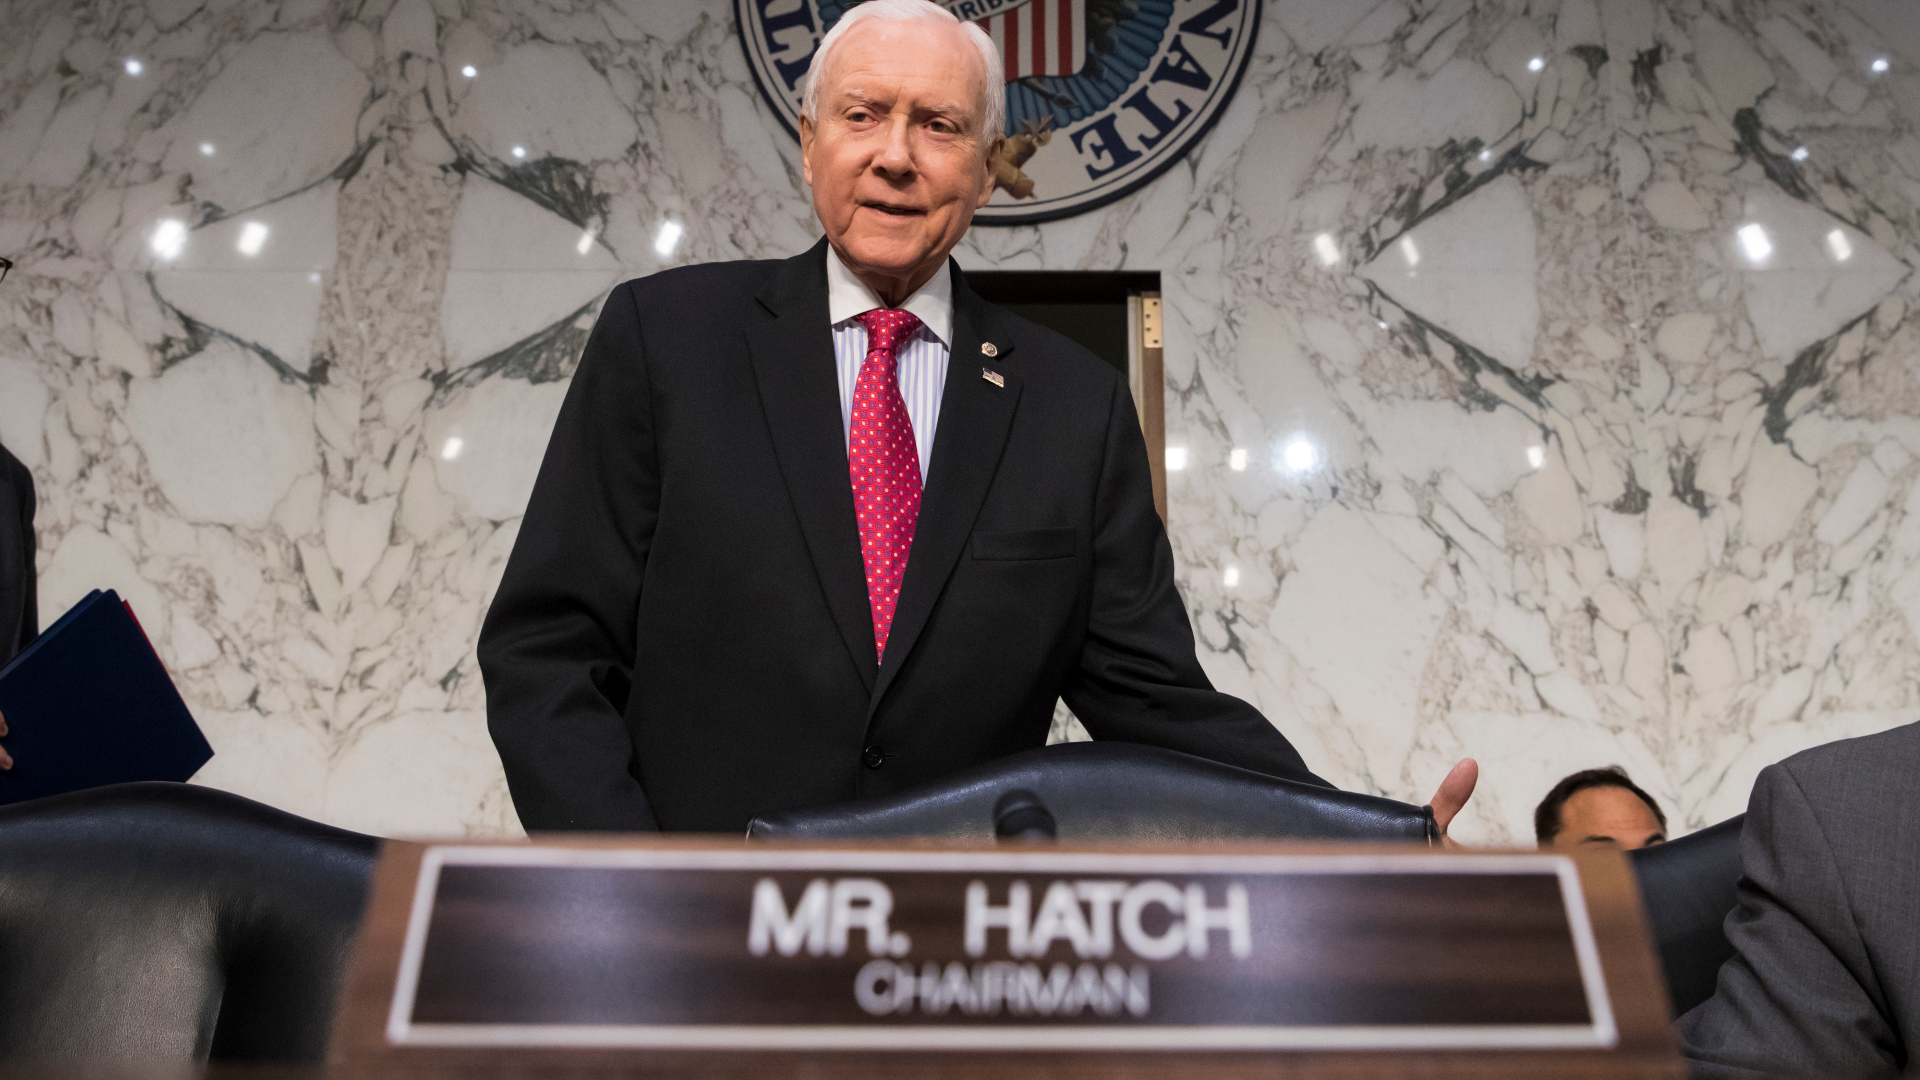 With Orrin Hatch retiring, Trump will lose a major ally in the Senate